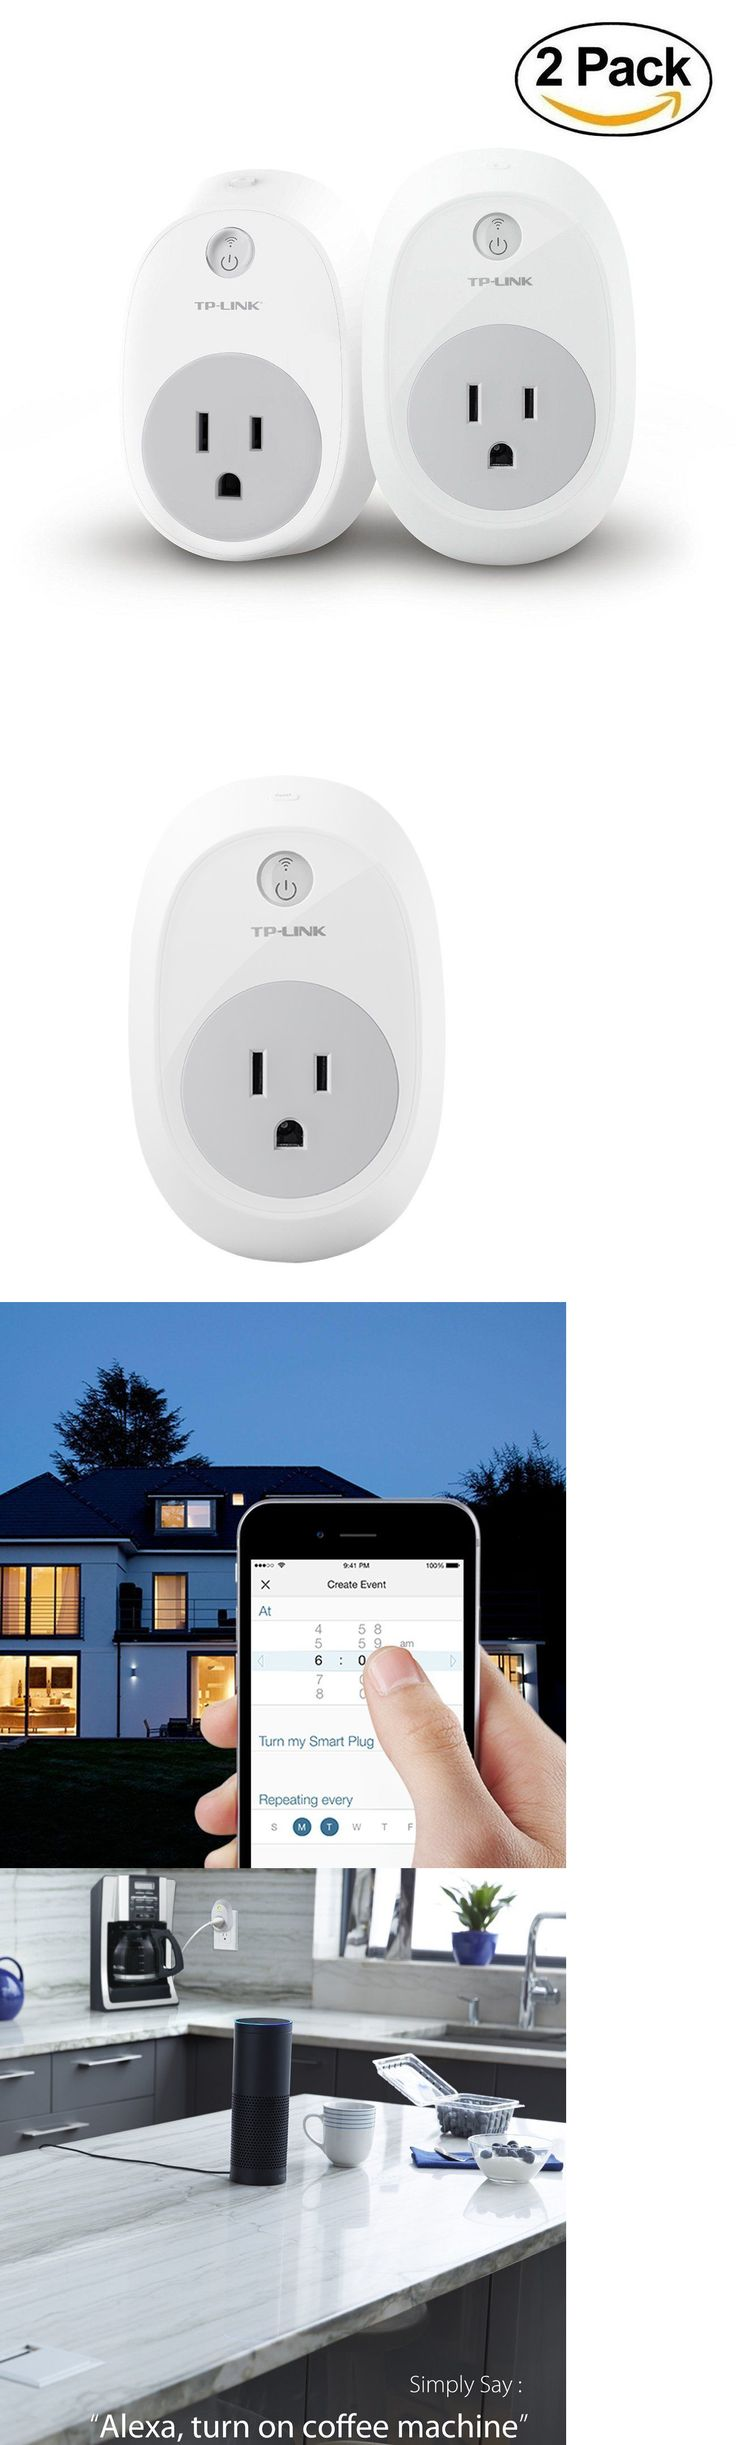 Home Automation Modules: Tp-Link Smart Home Plug Outlet No Hub Wi-Fi Control Devices W/ Alexa (2 Pack) BUY IT NOW ONLY: $79.99